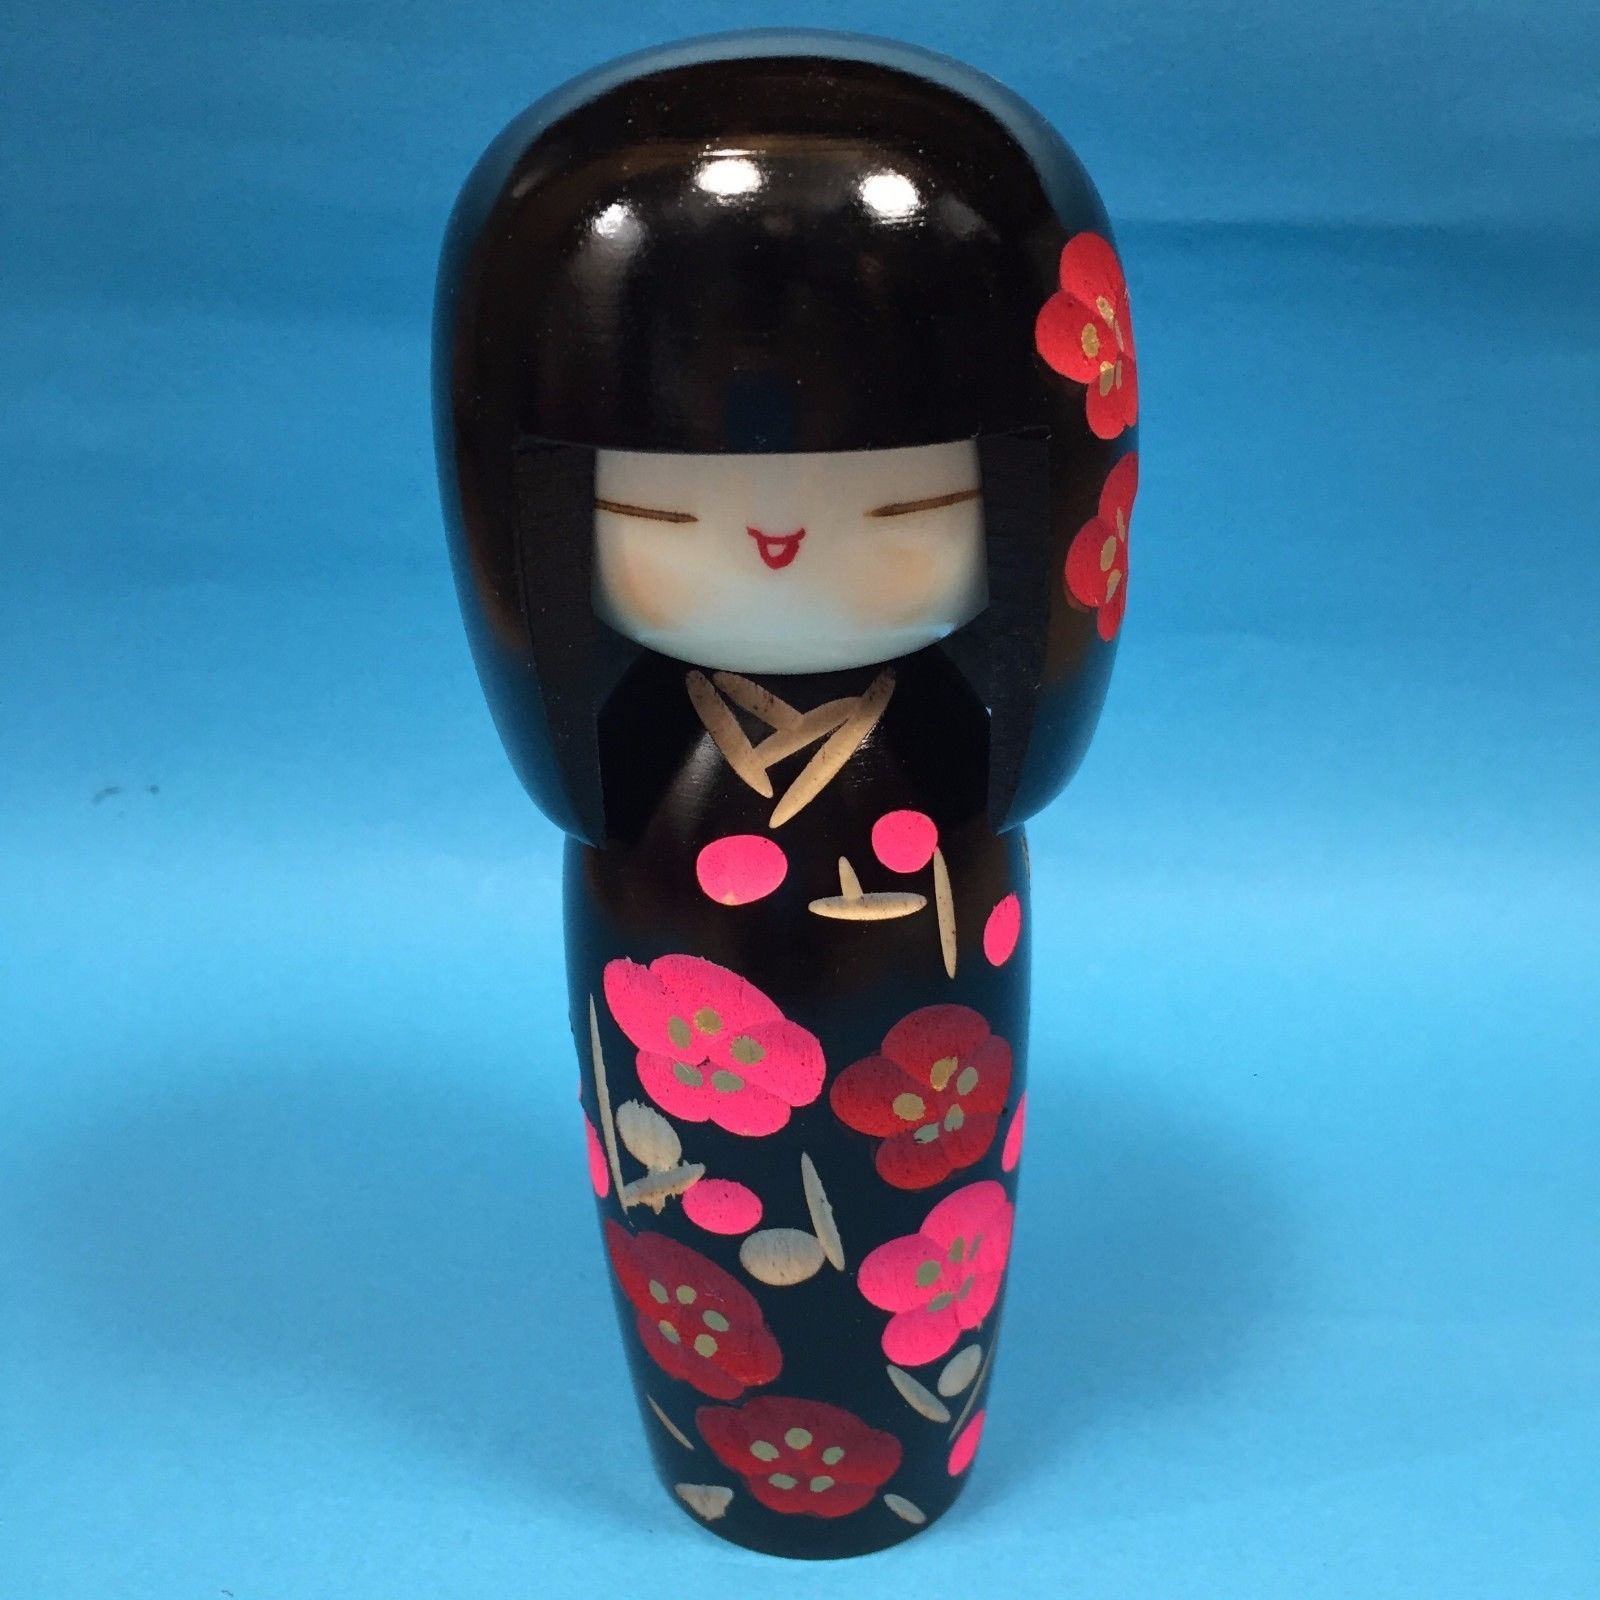 F S Japanese Handicraft Kokeshi Doll Cute Kawaii Black Color From